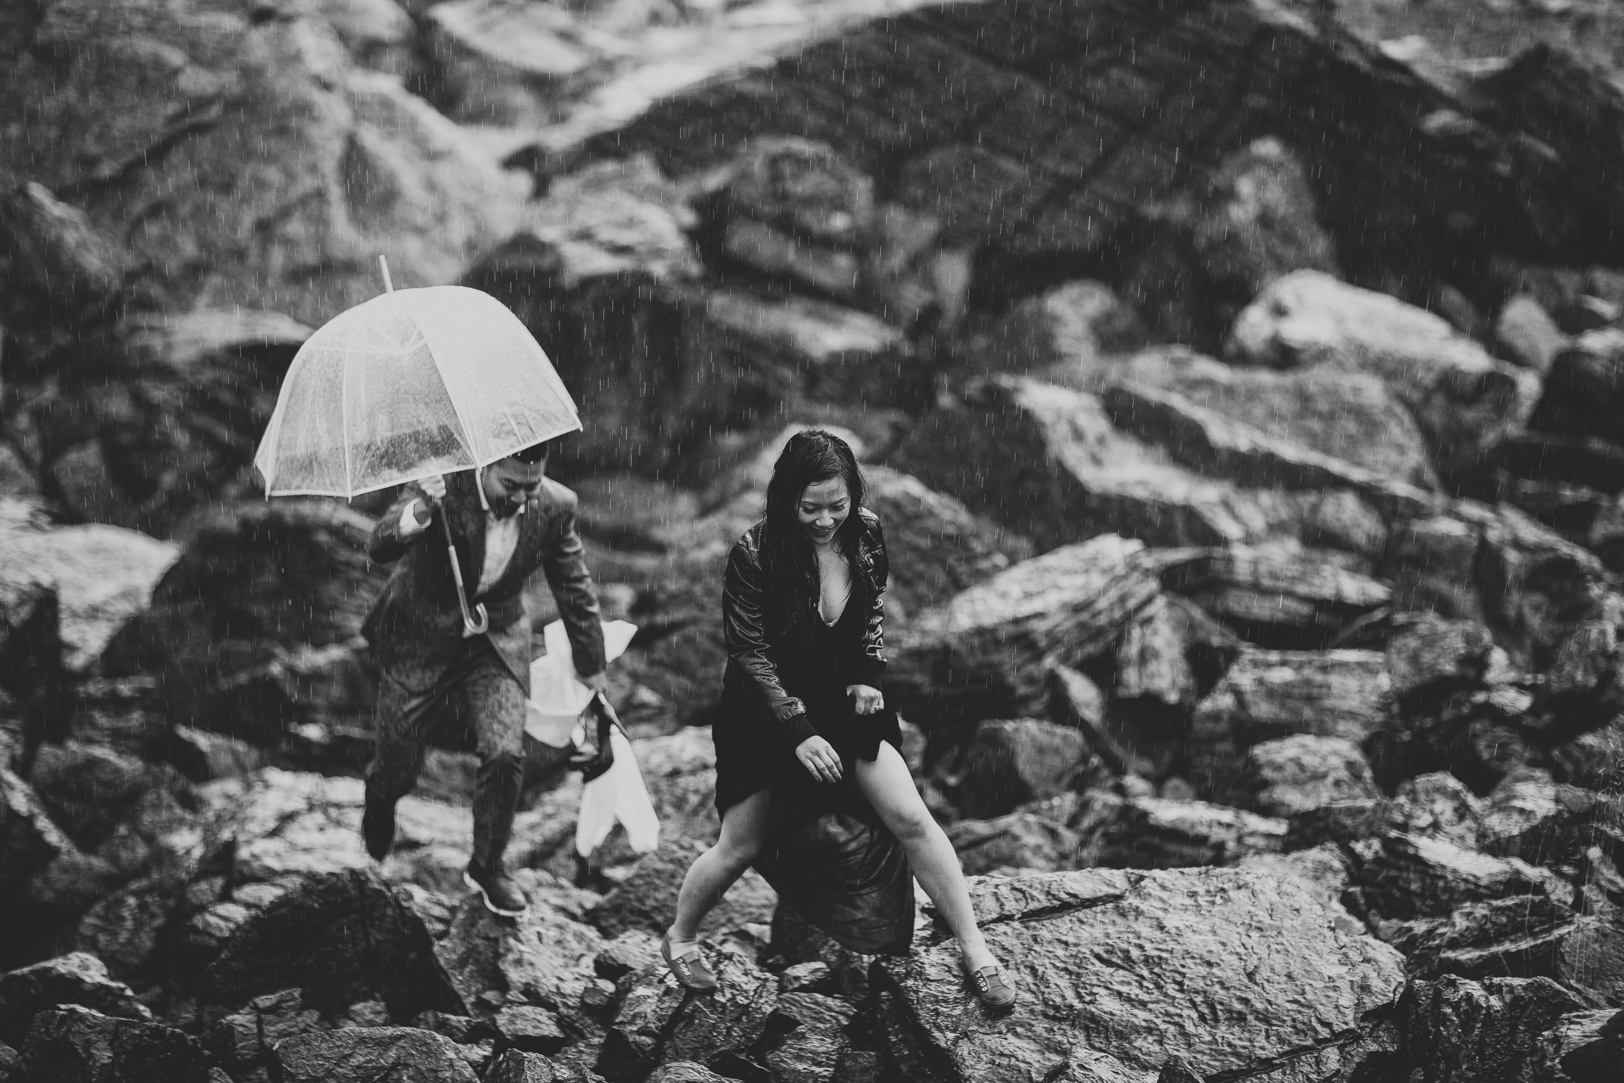 Engagement Photos with Umbrella - engagement pictures in the rain in Jasper